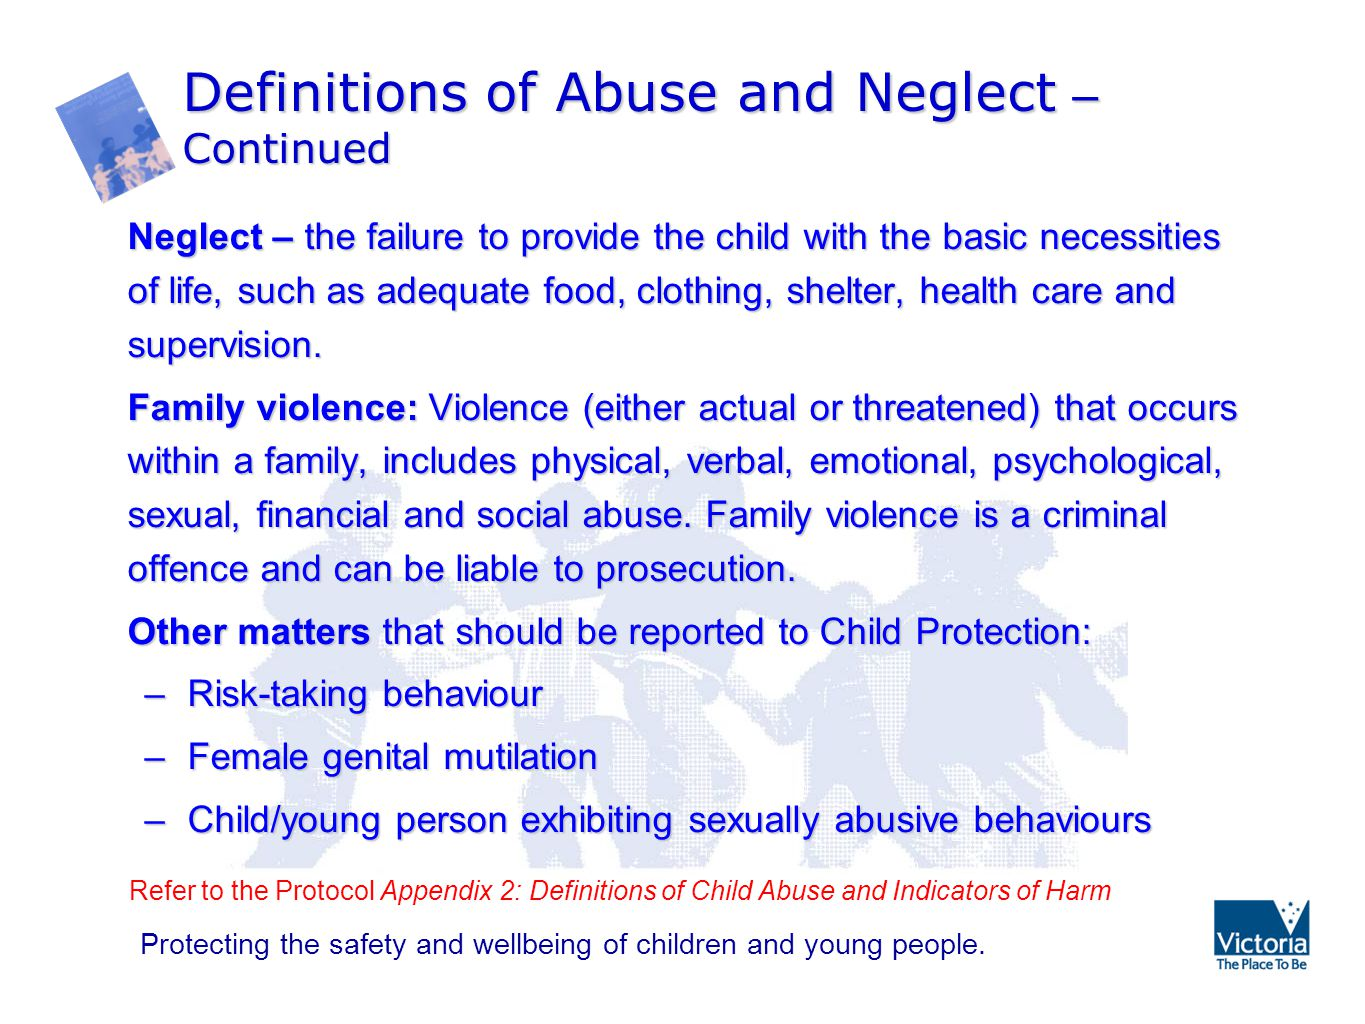 definition and results of child sexual abuse